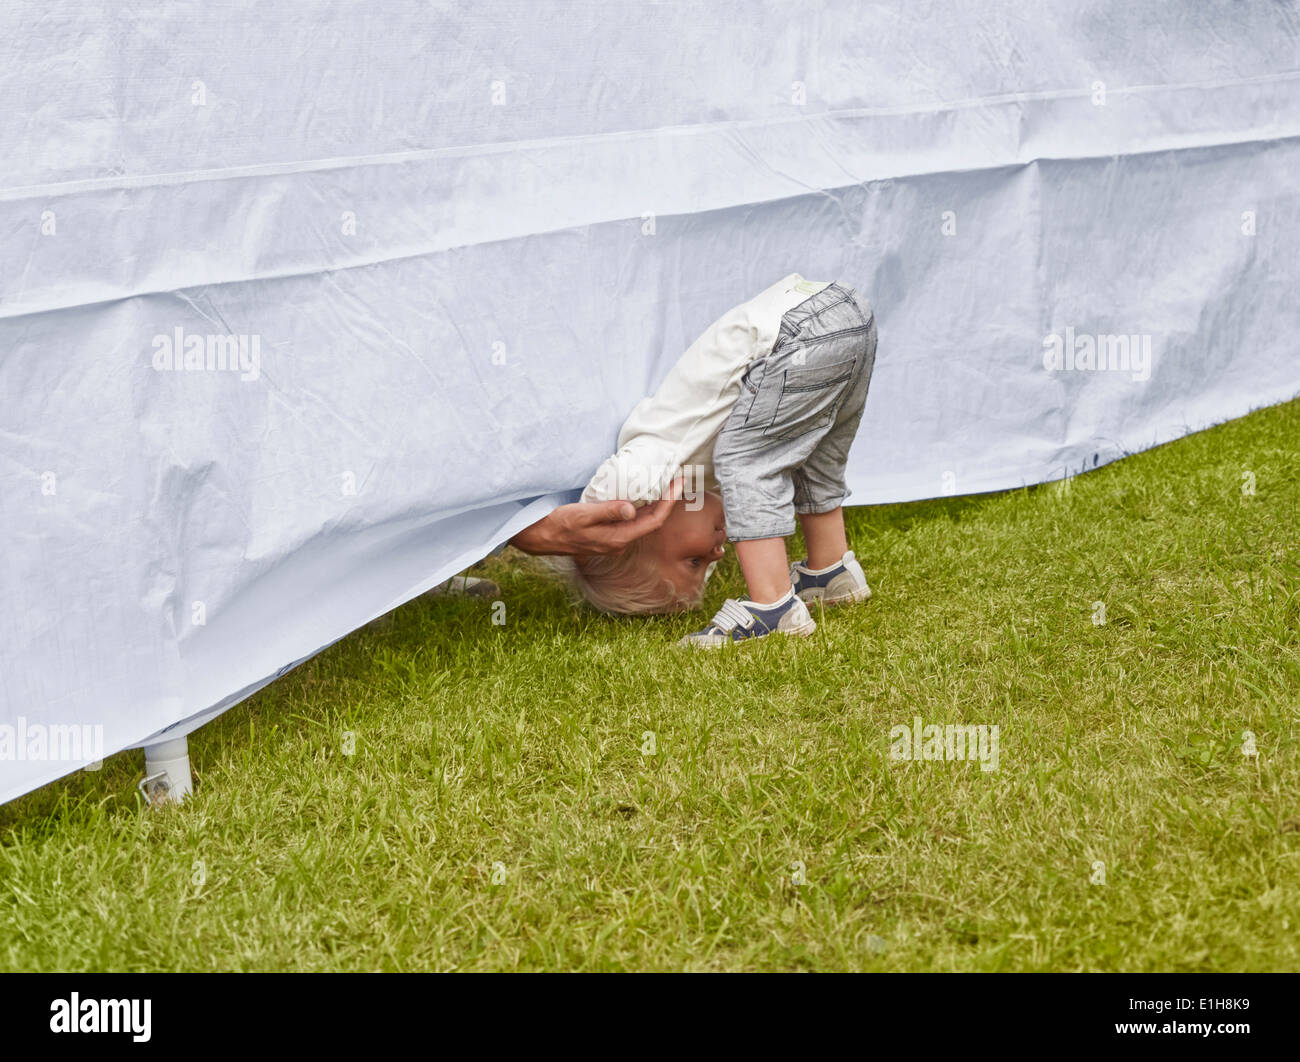 Young boy bending forward to reach fathers hand under tent - Stock Image